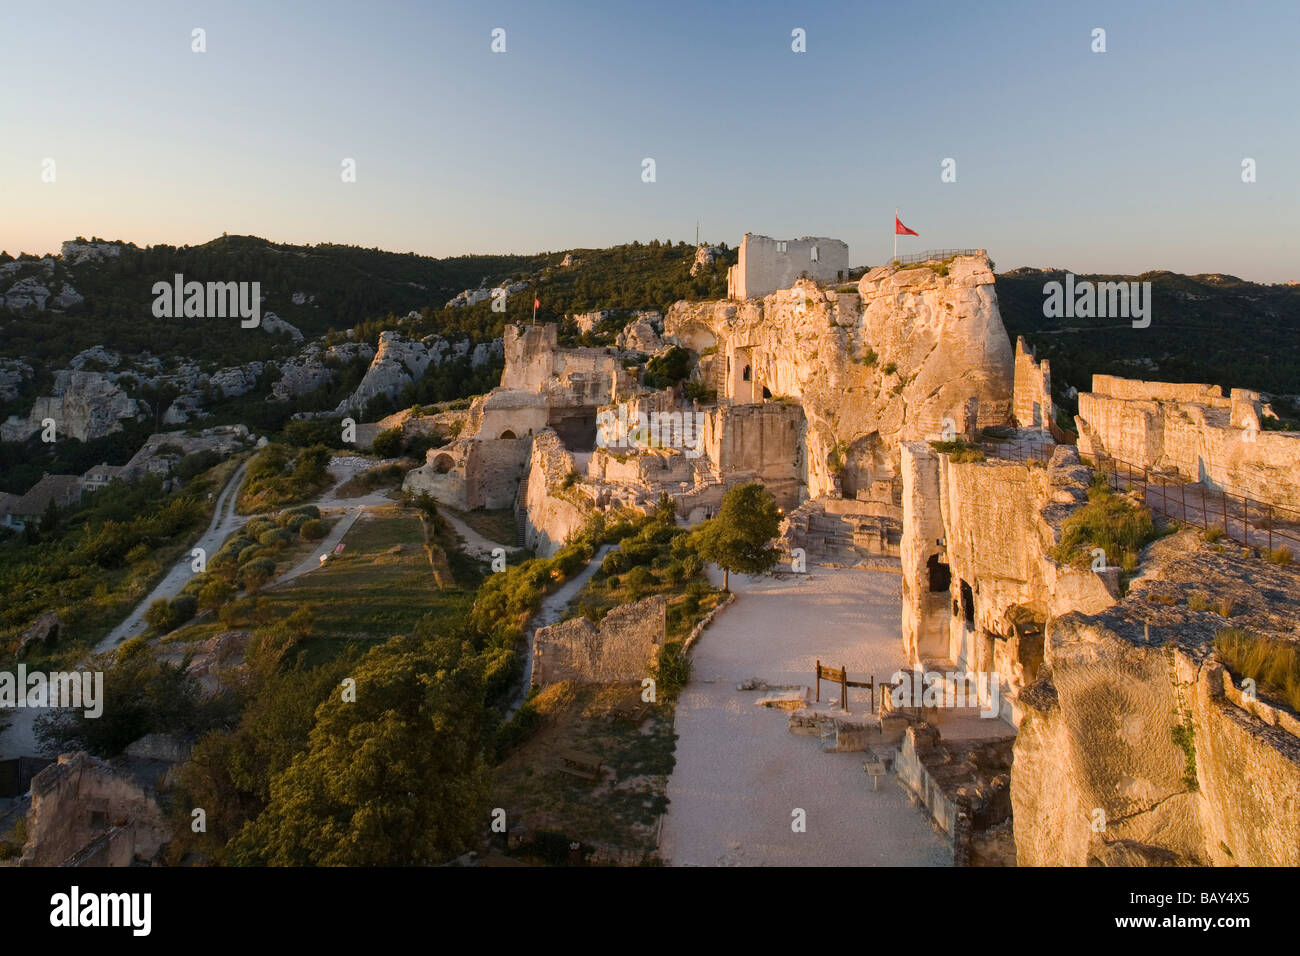 The rock fortress in the evening light, Les-Baux-de-Provence, Vaucluse, Provence, France - Stock Image